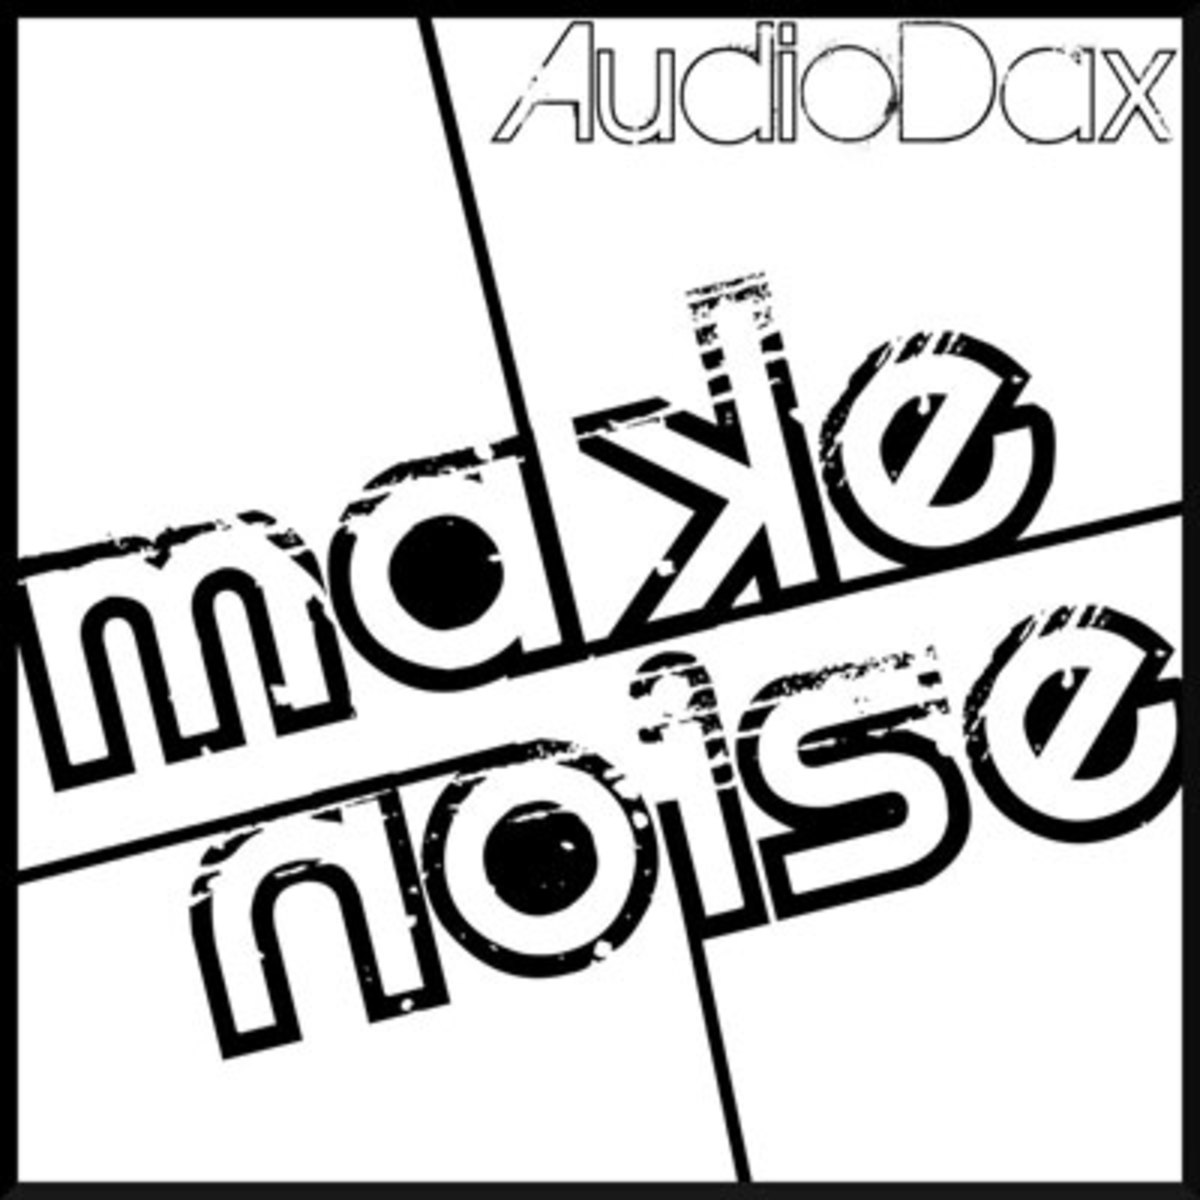 audiodax-makenoise.jpg